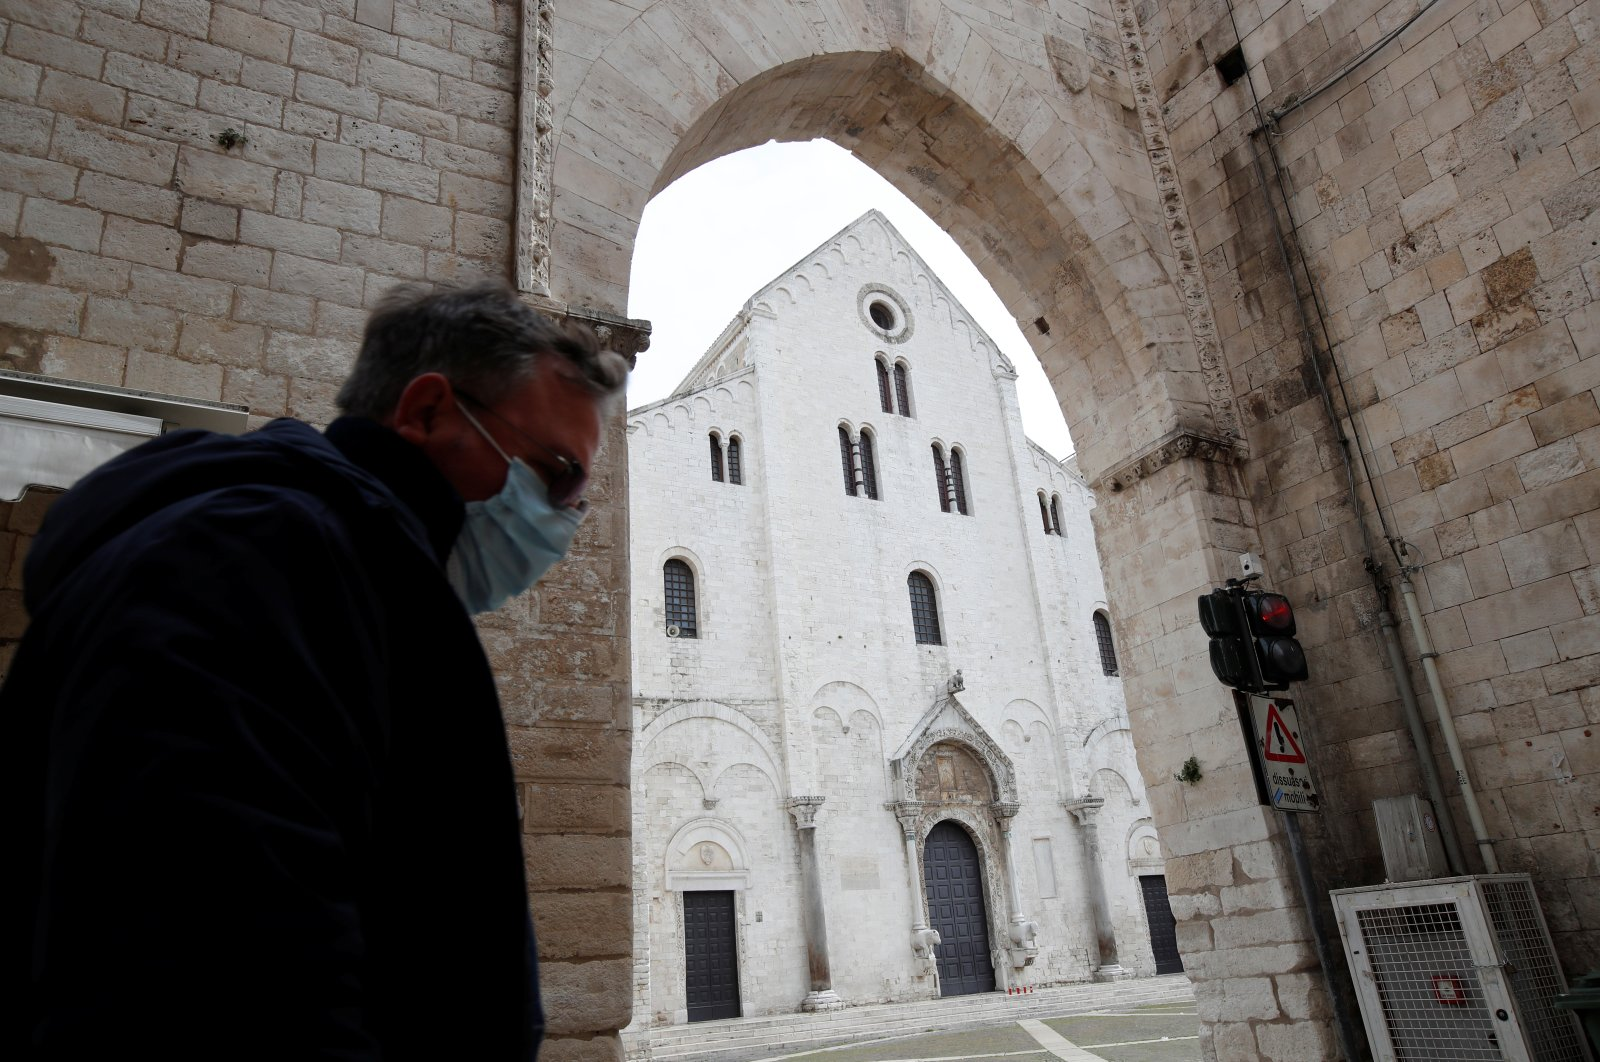 A general view as a man wearing a protective face mask walks past the Basilica of St. Nicholas, protector of Bari as the spread of the coronavirus disease (COVID-19) continues, in Bari, Italy, March 27, 2020. (Reuters Photo)